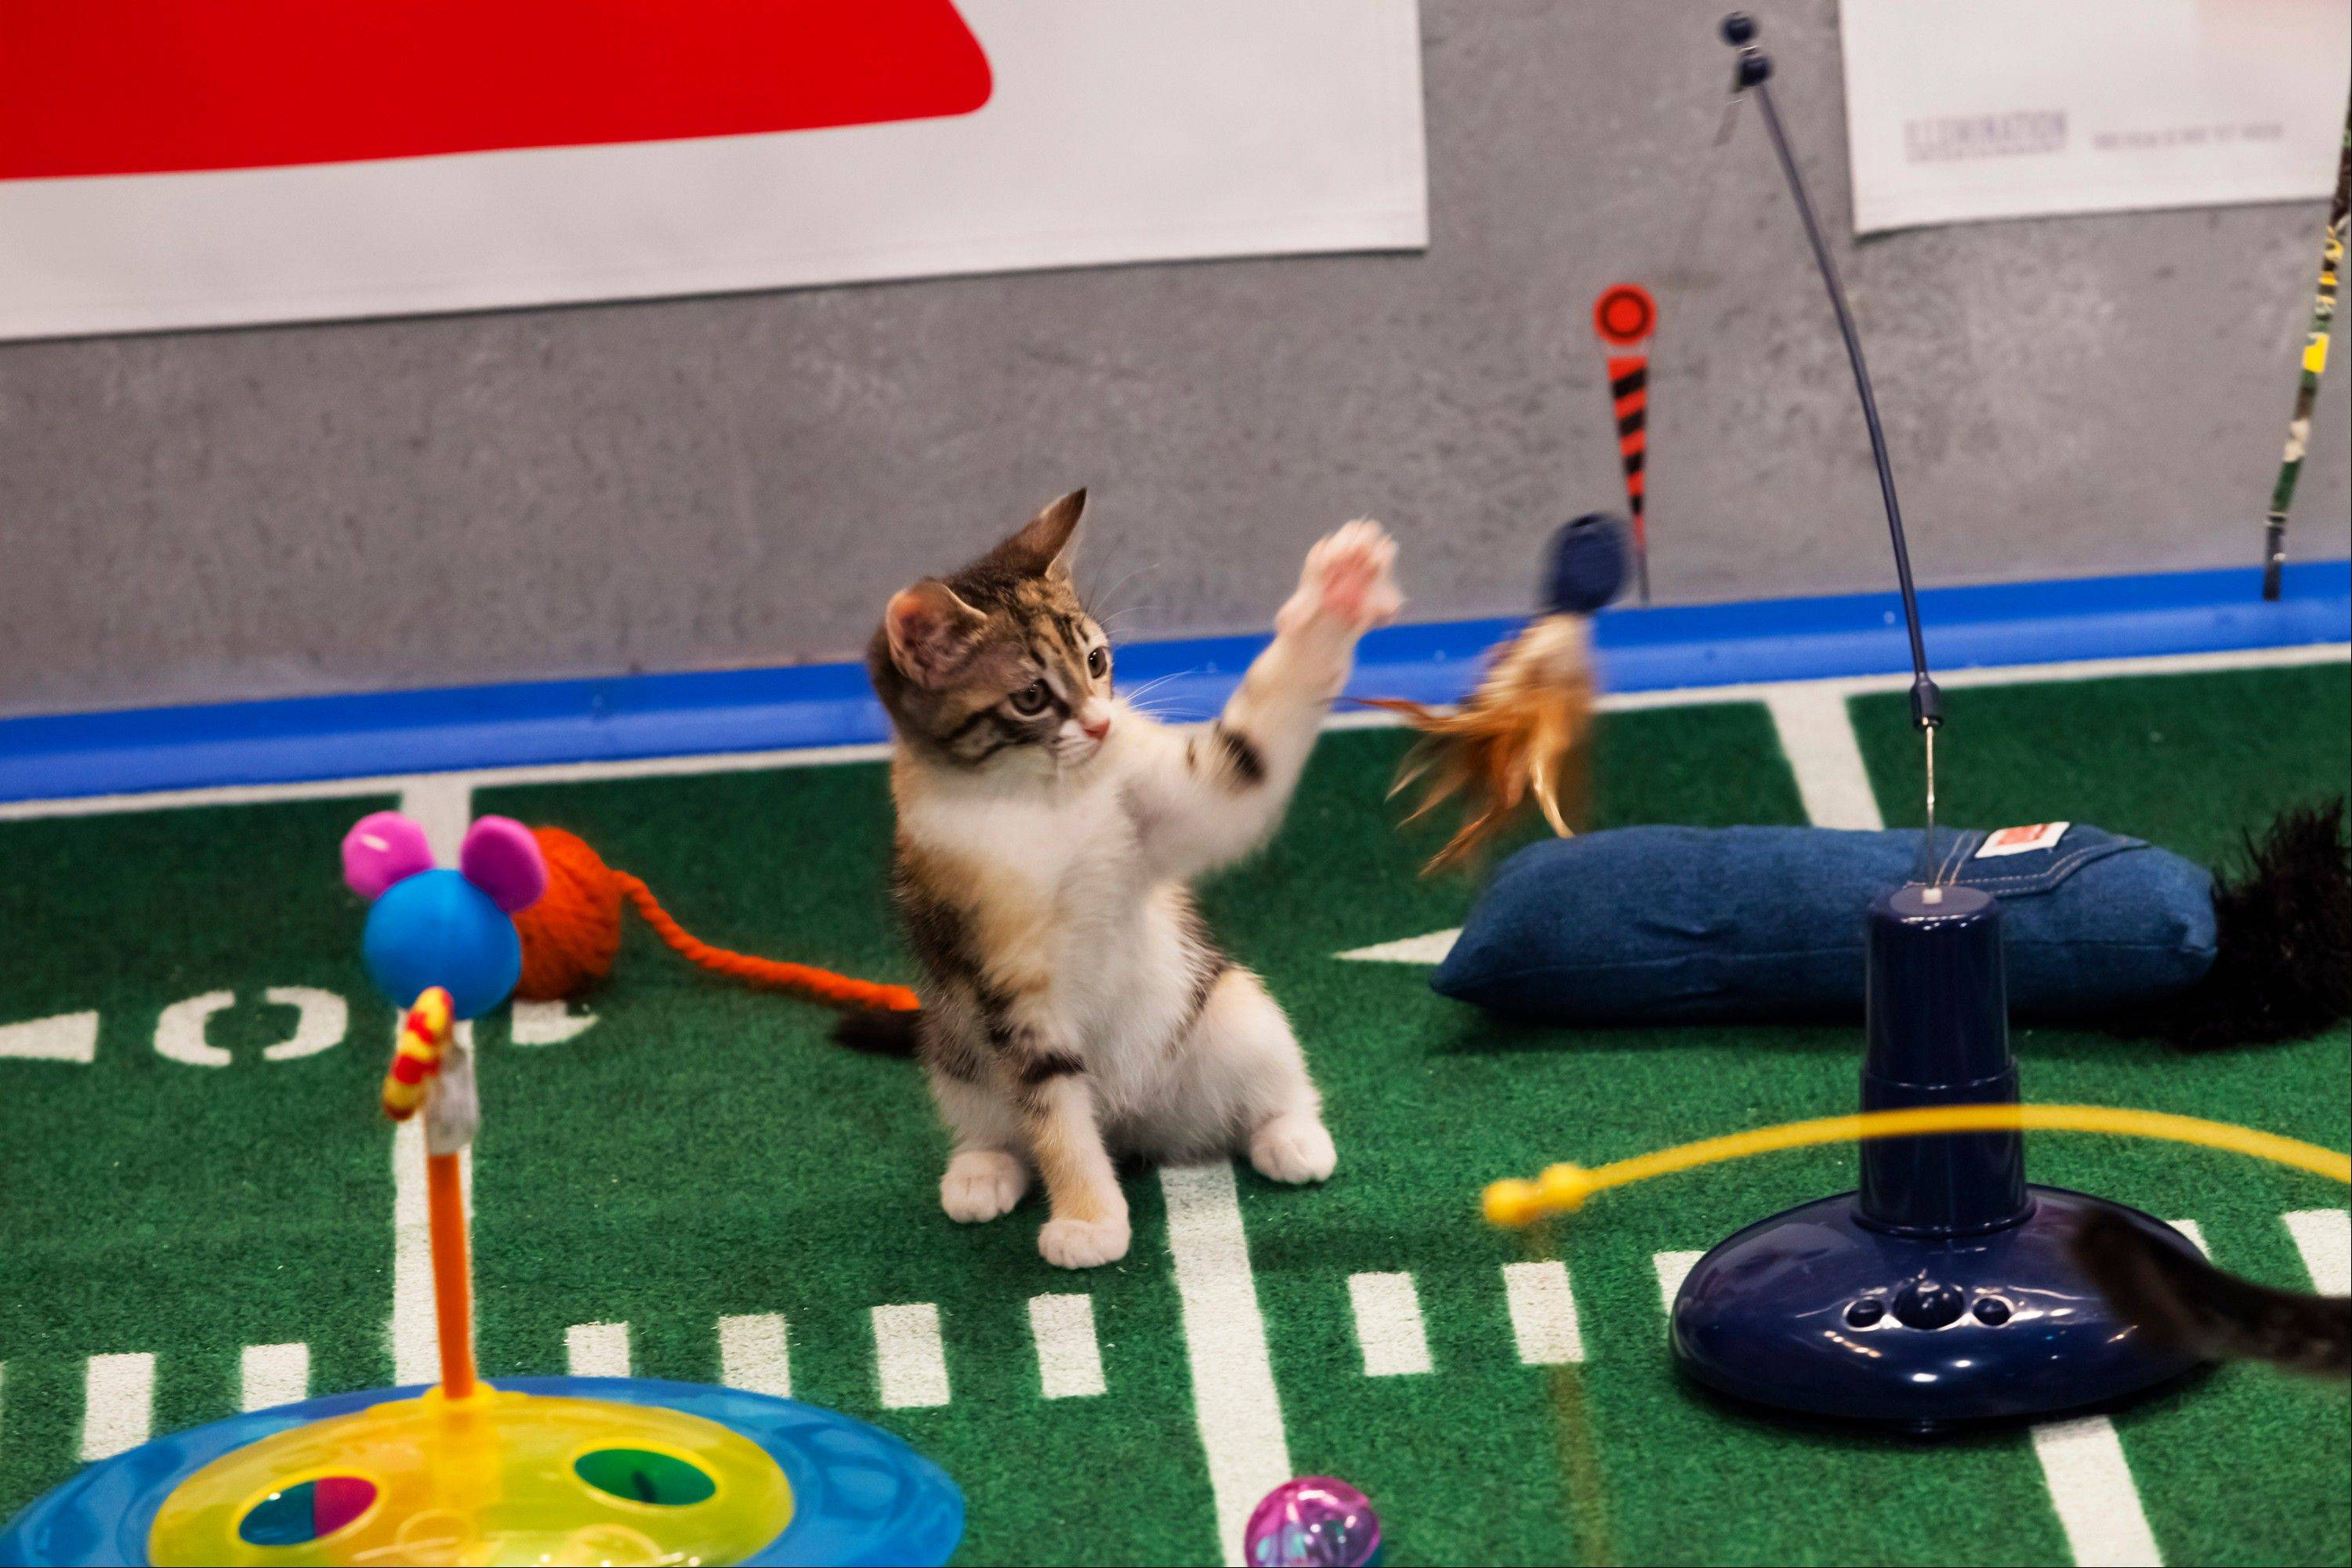 The inaugural Kitten Bowl will be shown on the Hallmark Channel. The show is part of Hallmark's Pet Project Initiative and will be done with partner American Humane Association.